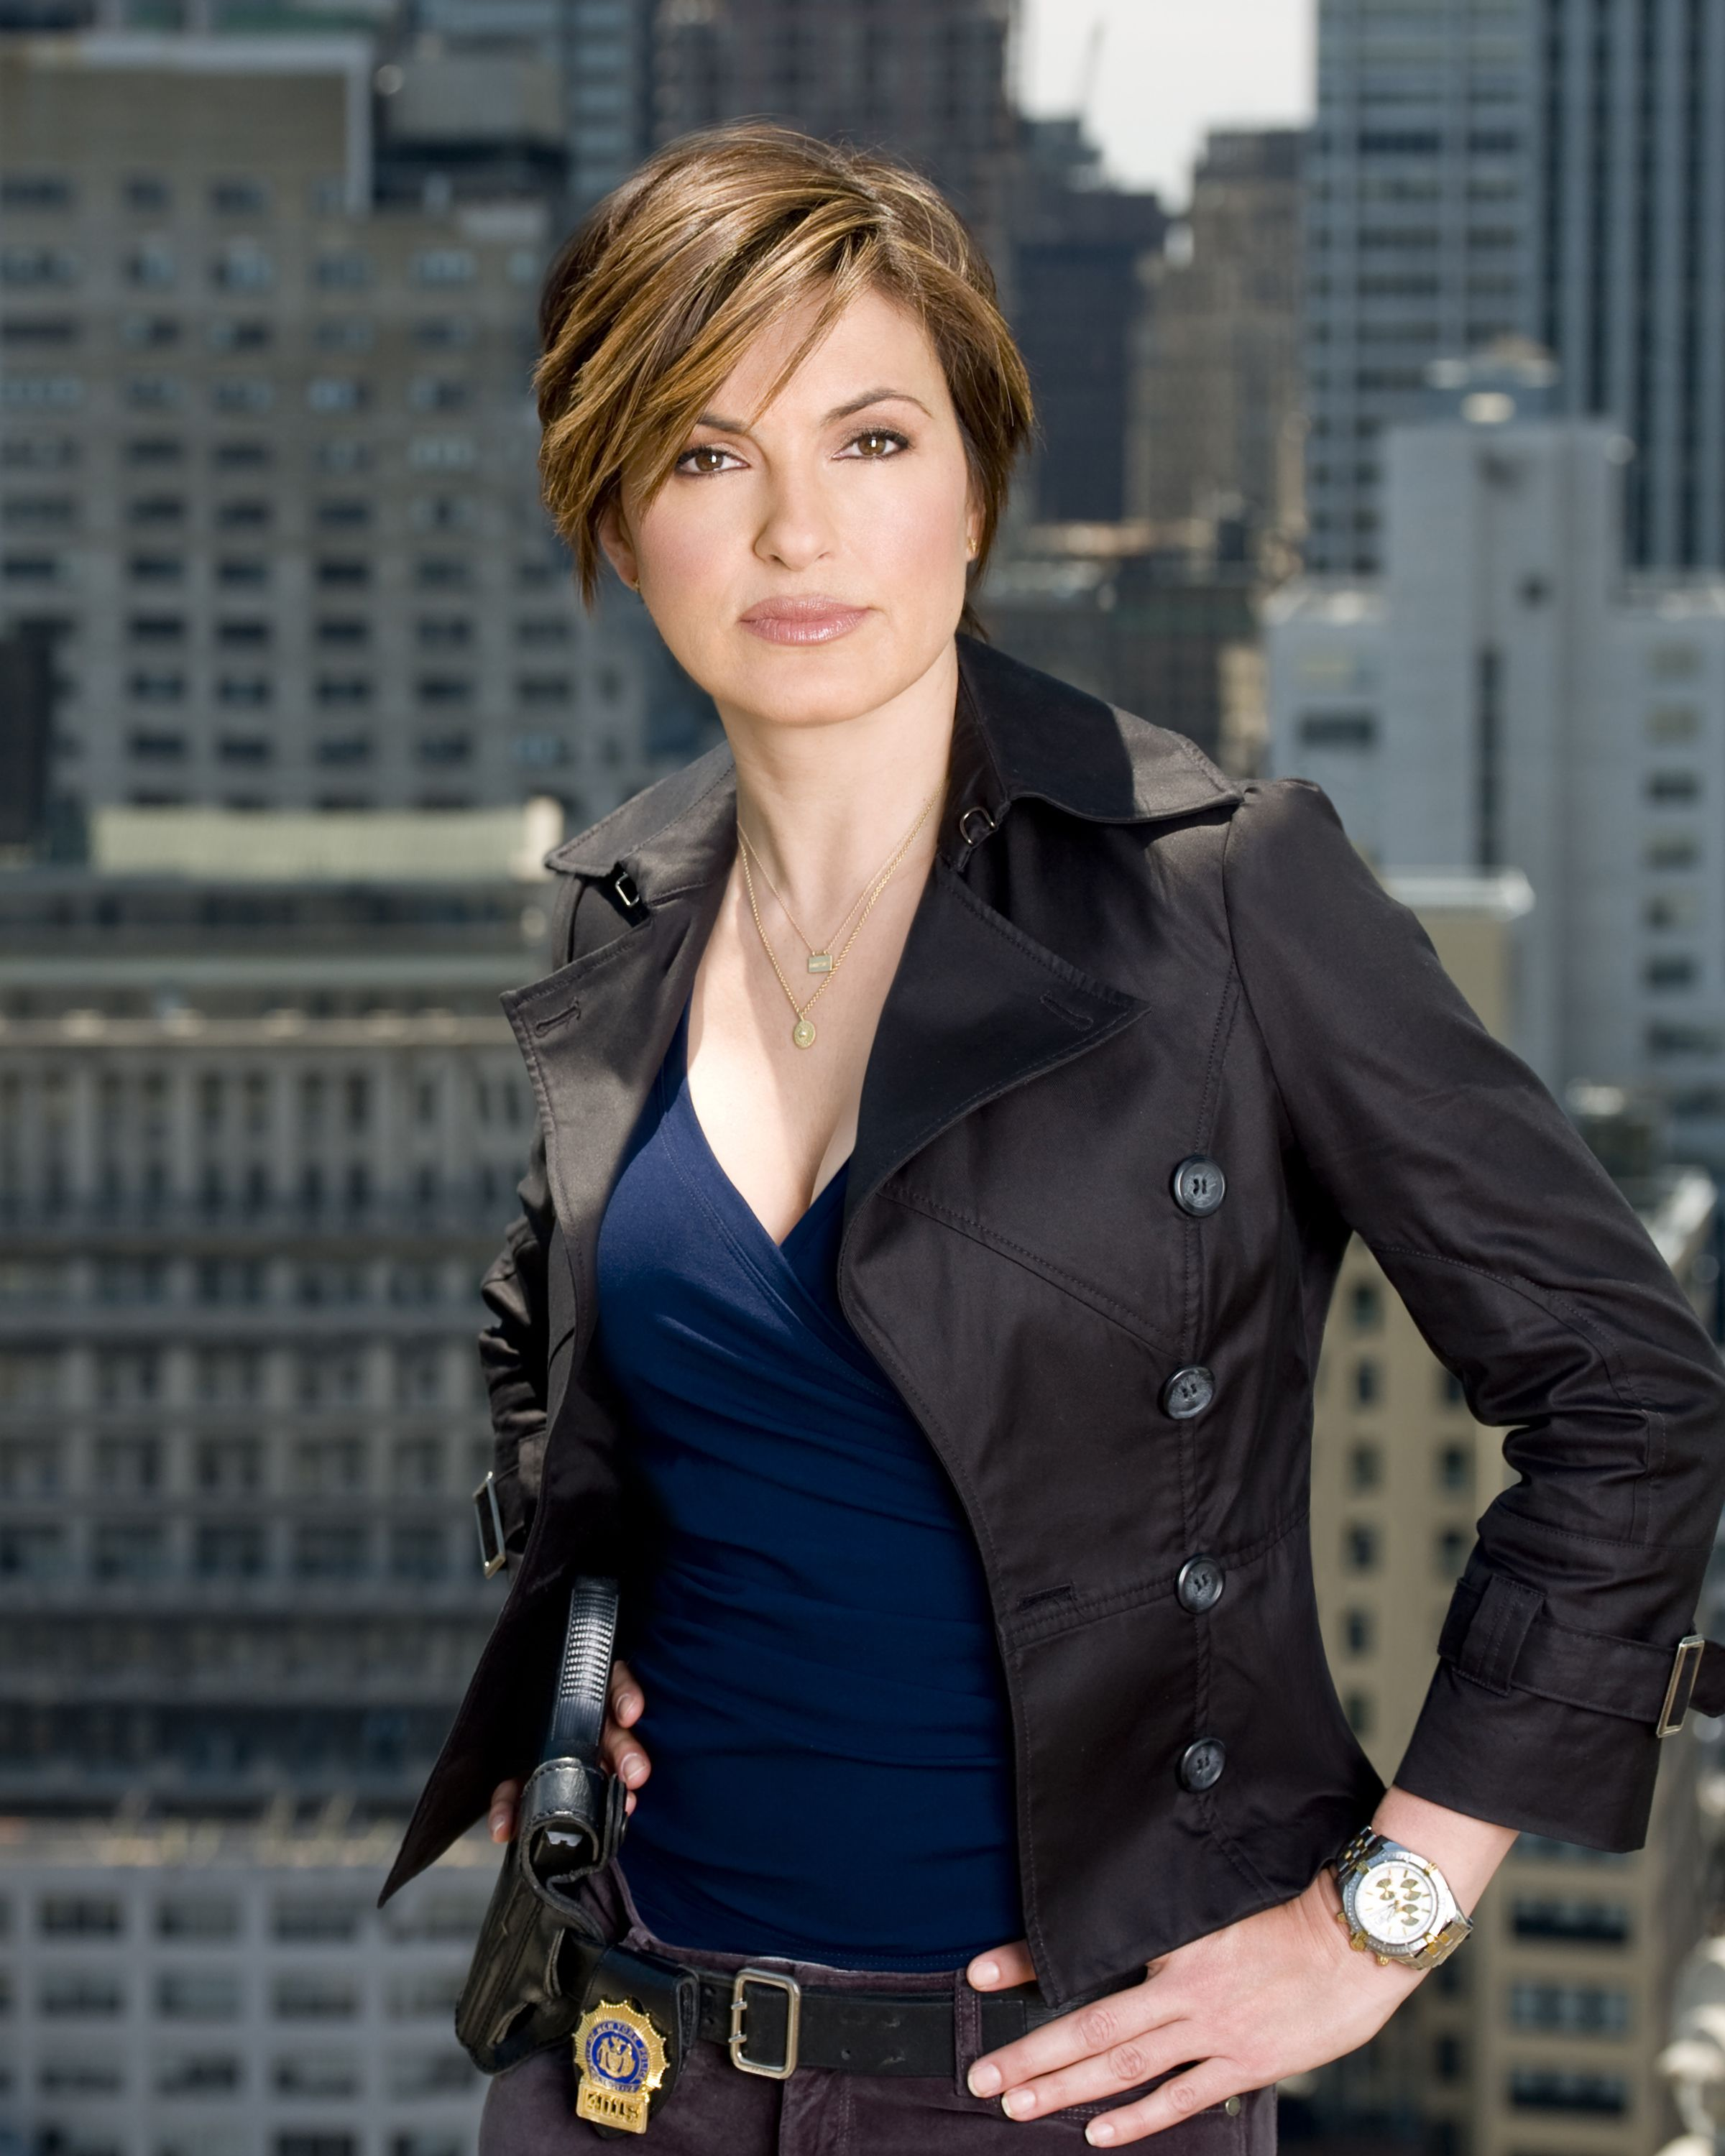 Law Order Special Victims Unit Season 9 Olivia Benson Mariska Hargitay Trendy Short Haircuts Mariska Hargitay Female Cop